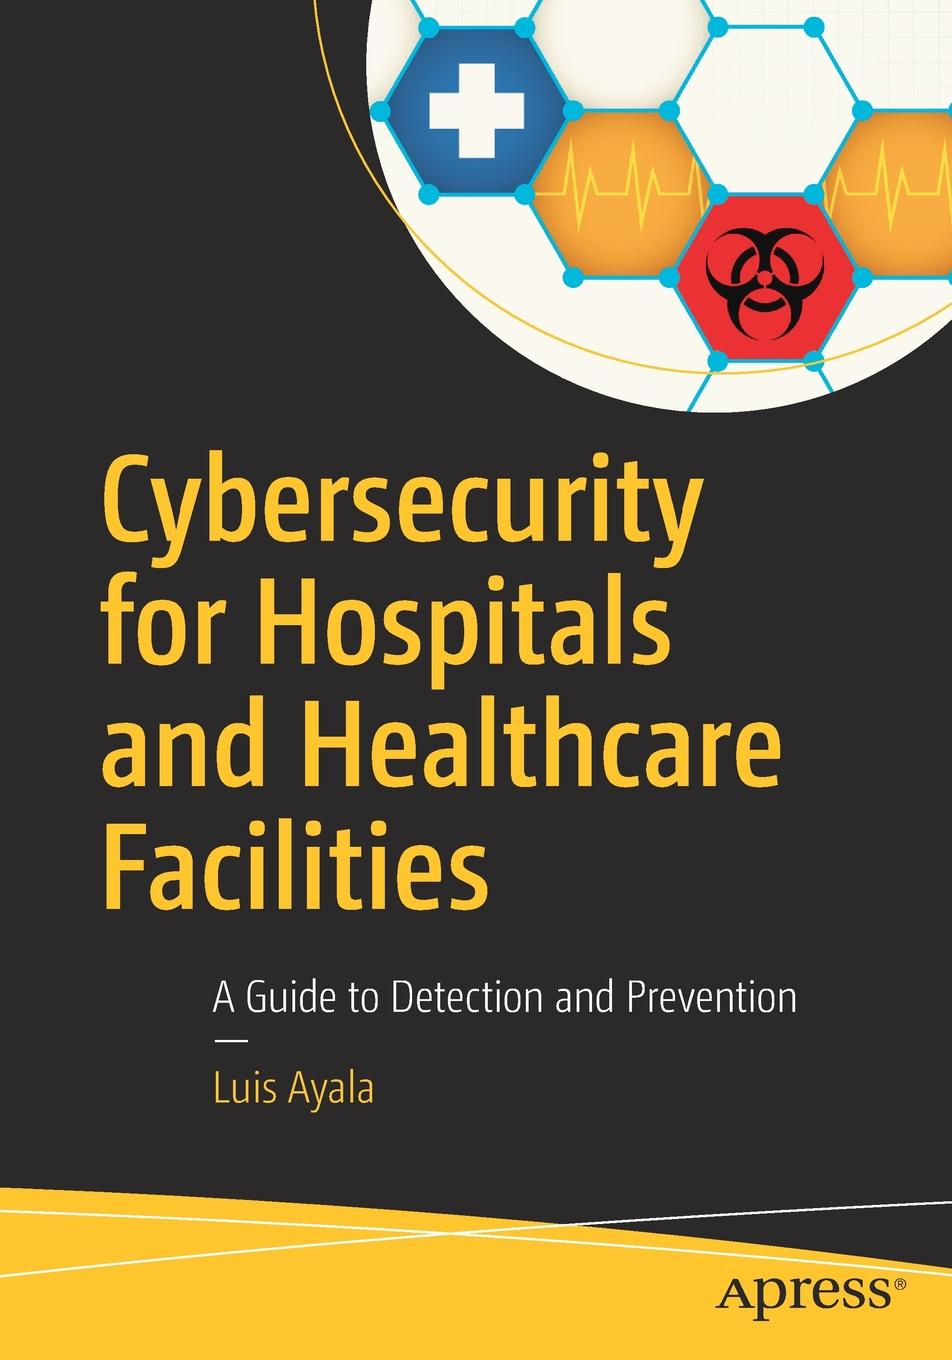 лучшая цена Luis Ayala Cybersecurity for Hospitals and Healthcare Facilities. A Guide to Detection and Prevention